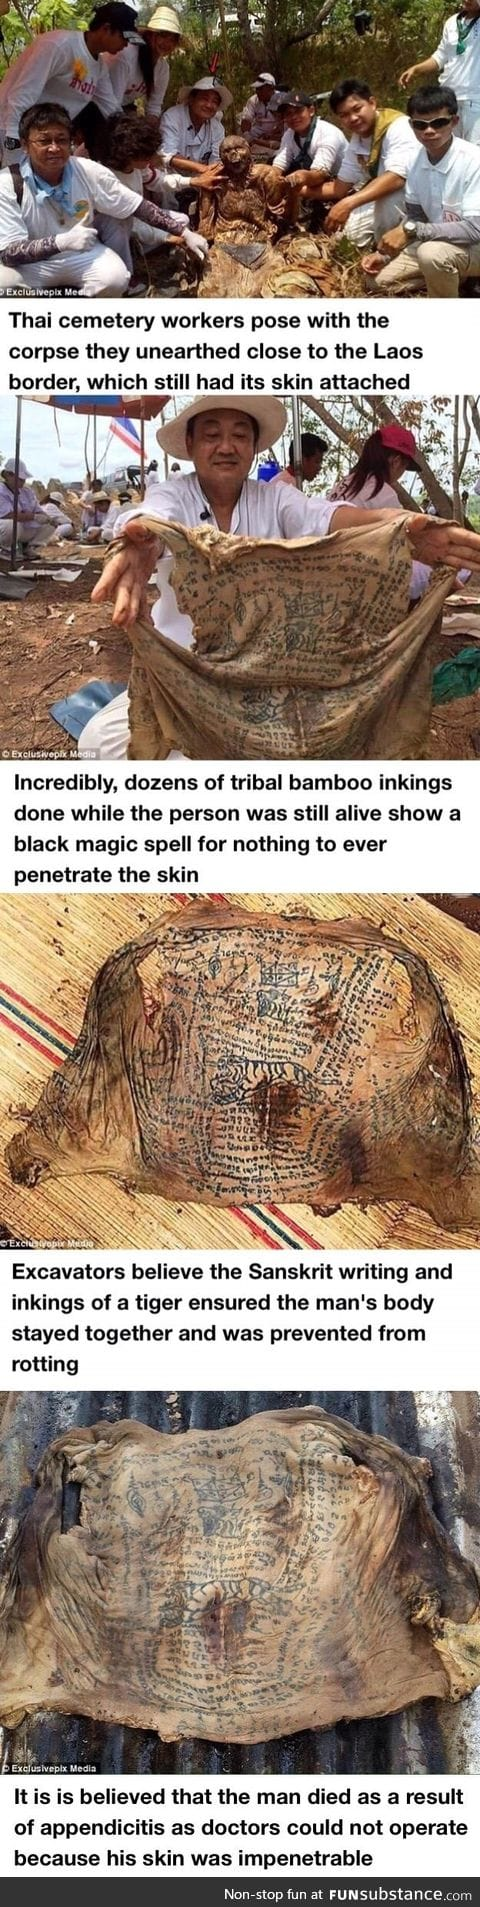 Corpse's withered skin remains intact - because of black magic TATTOO